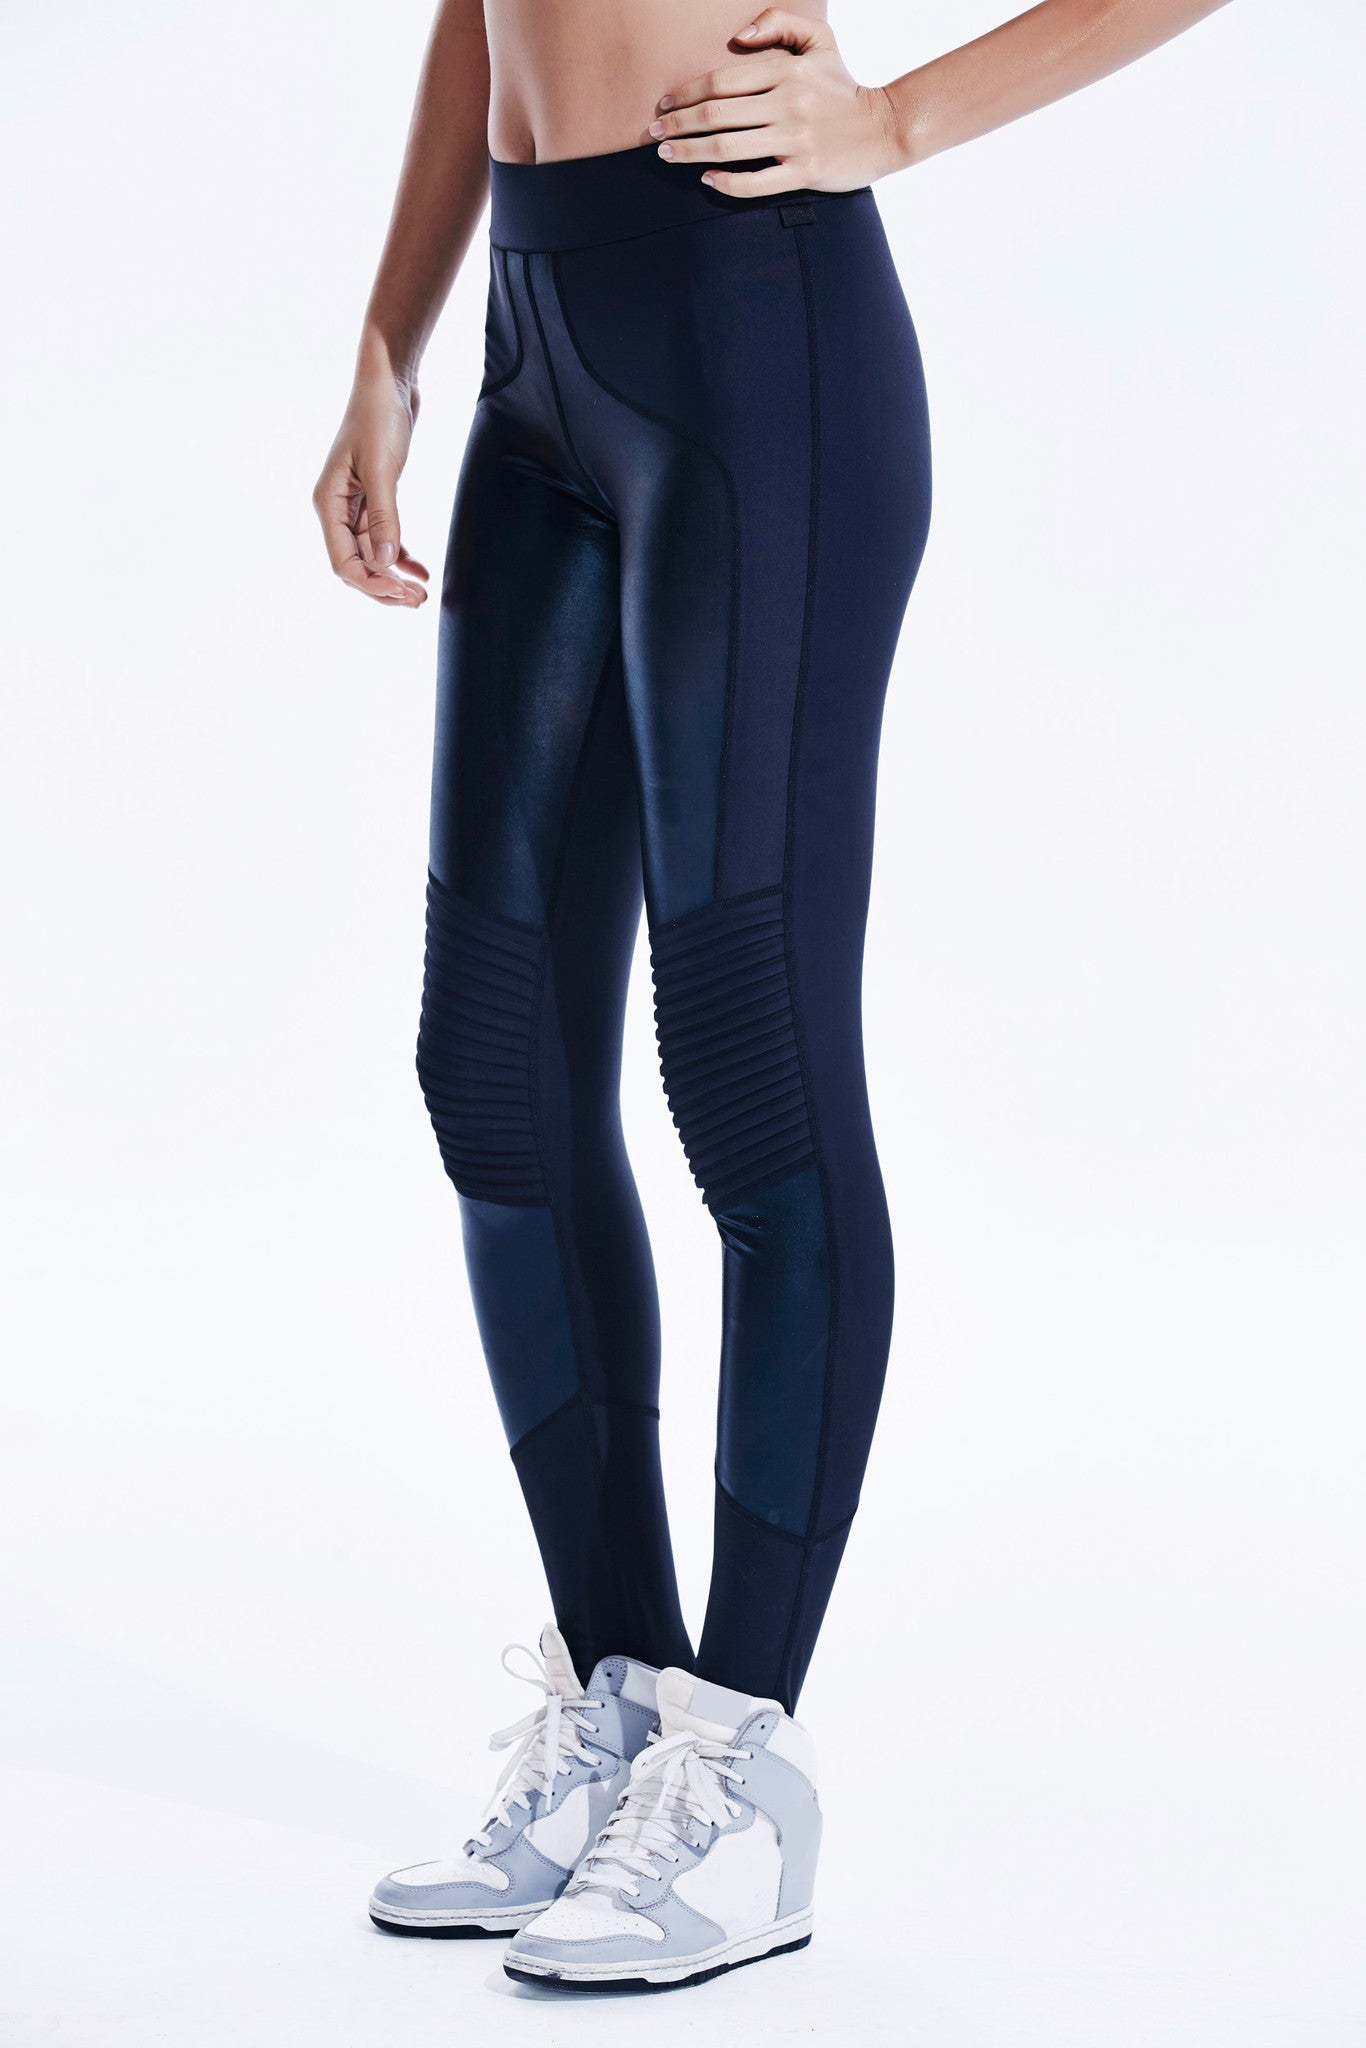 Stellar Leggings in Iridescent Black